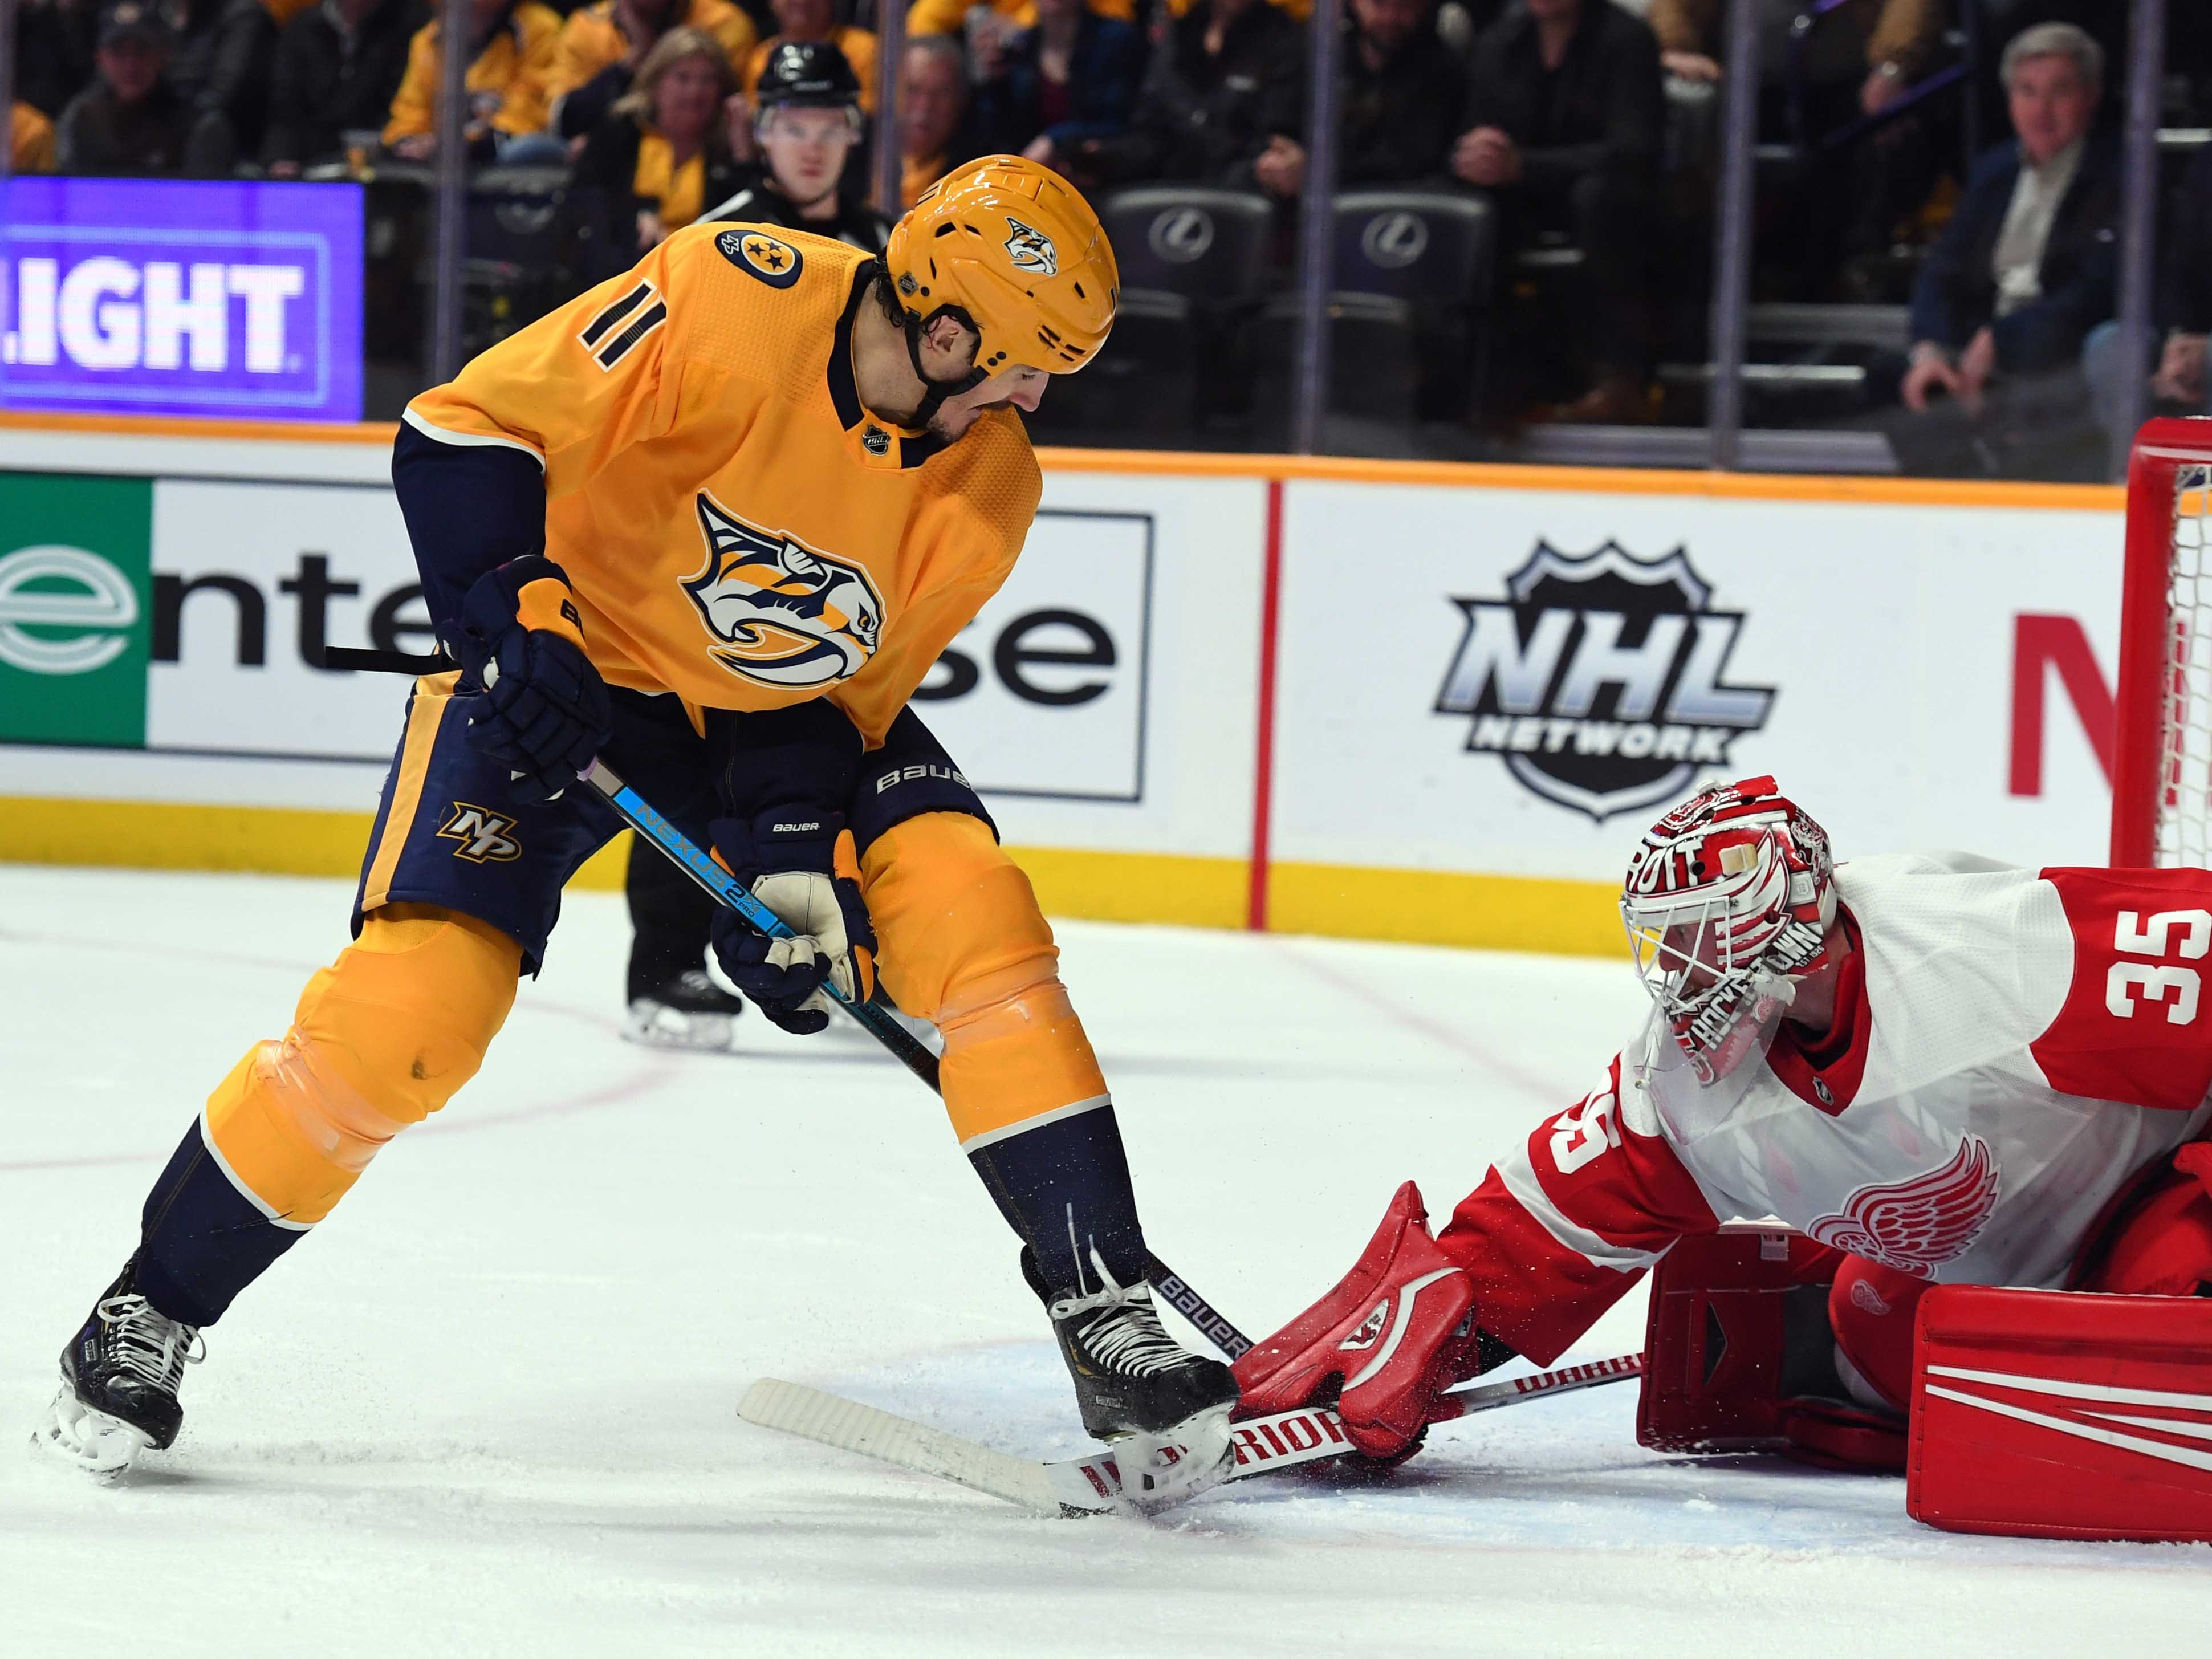 Predators center Brian Boyle (11) attempts a shot between his legs on Detroit Red Wings goaltender Jimmy Howard (35) during the first period at Bridgestone Arena.